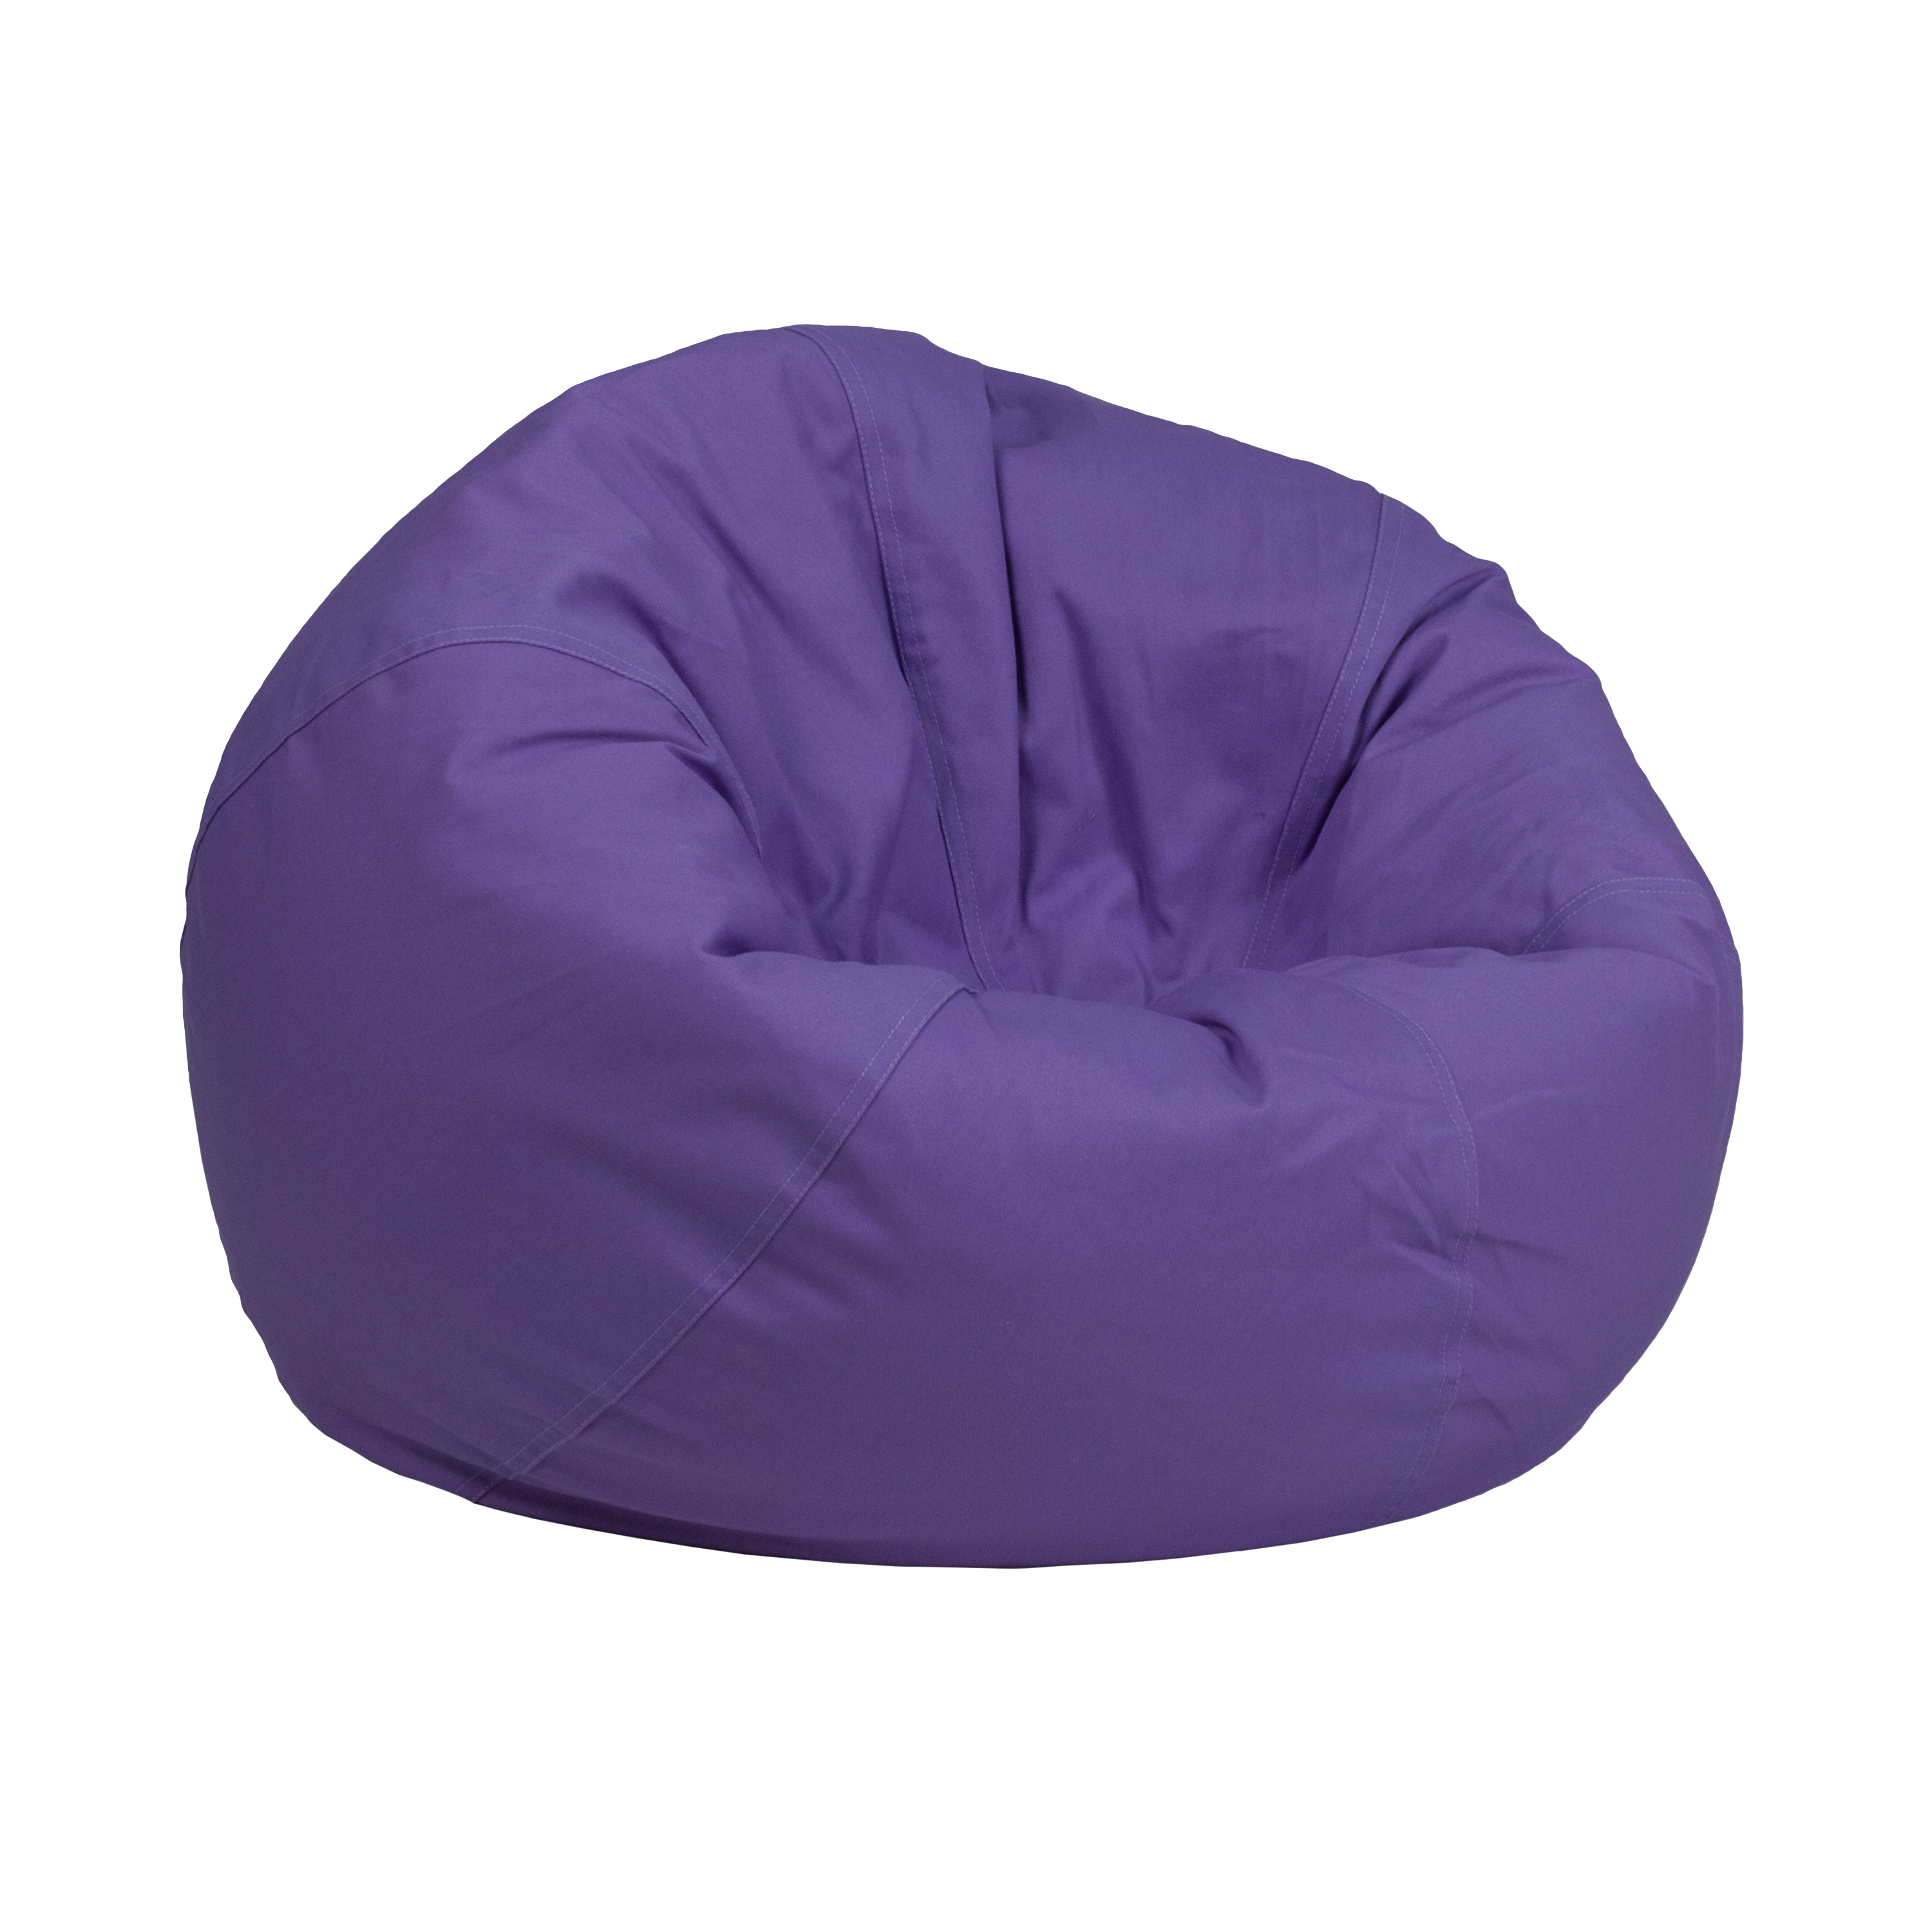 Flash Furniture Small Kids Bean Bag Chair, Multiple Colors